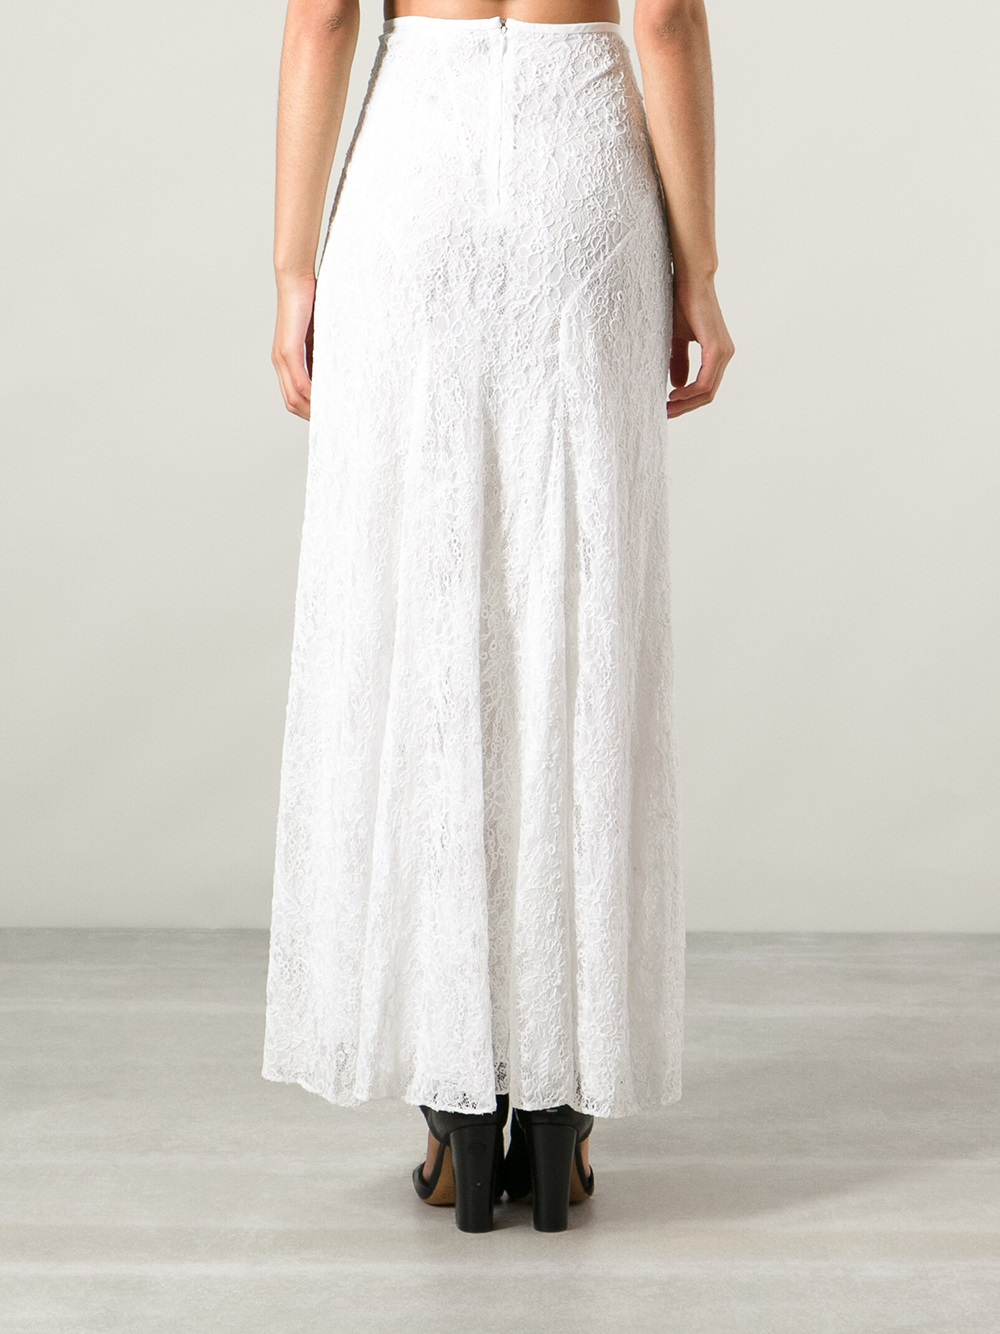 marant floral lace maxi skirt in white lyst